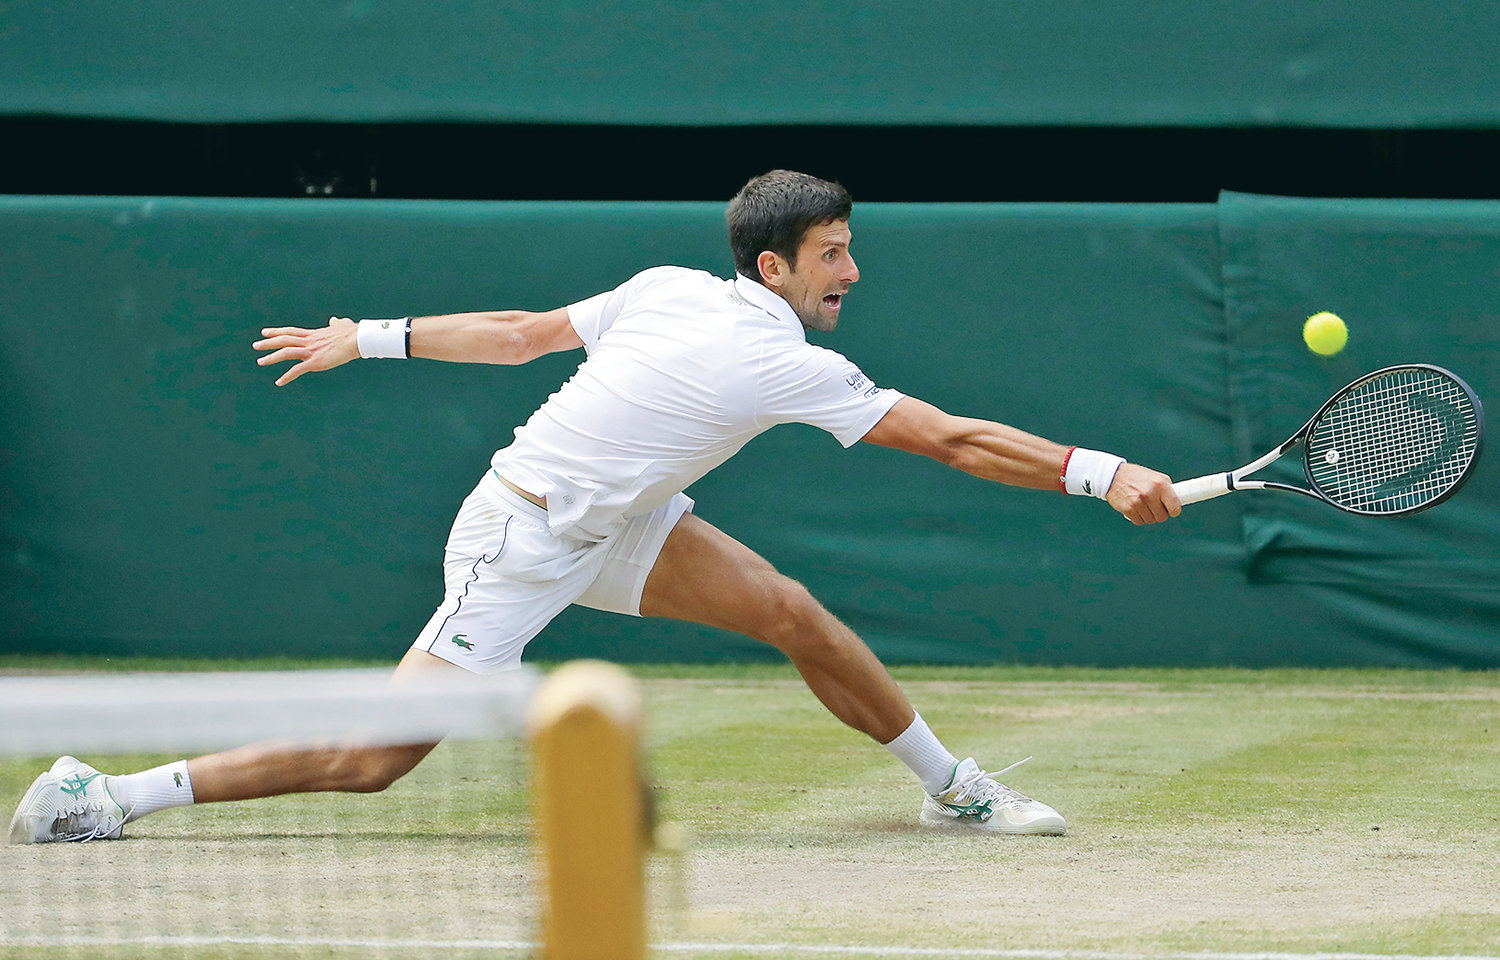 Serbia's Novak Djokovic returns the ball to Switzerland's Roger Federer during the men's singles final match of the Wimbledon Tennis Championships in London, Sunday.